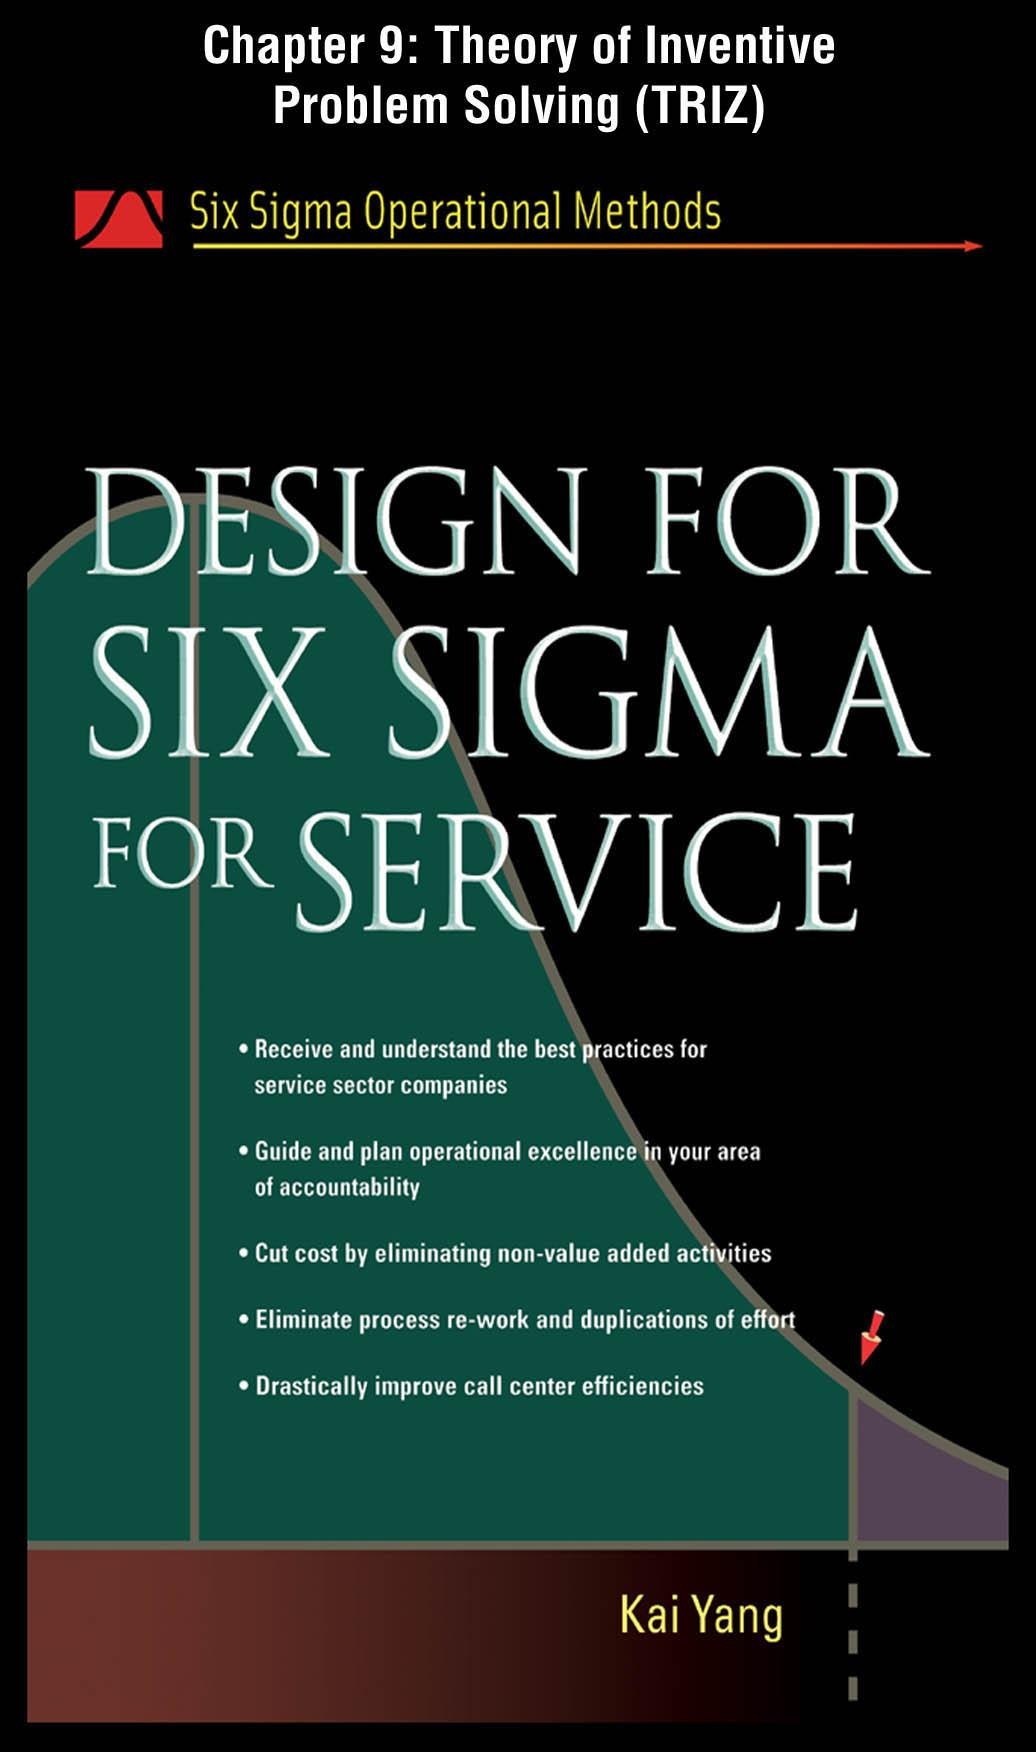 Design for Six Sigma for Service: Theory of Inventive Problem Solving